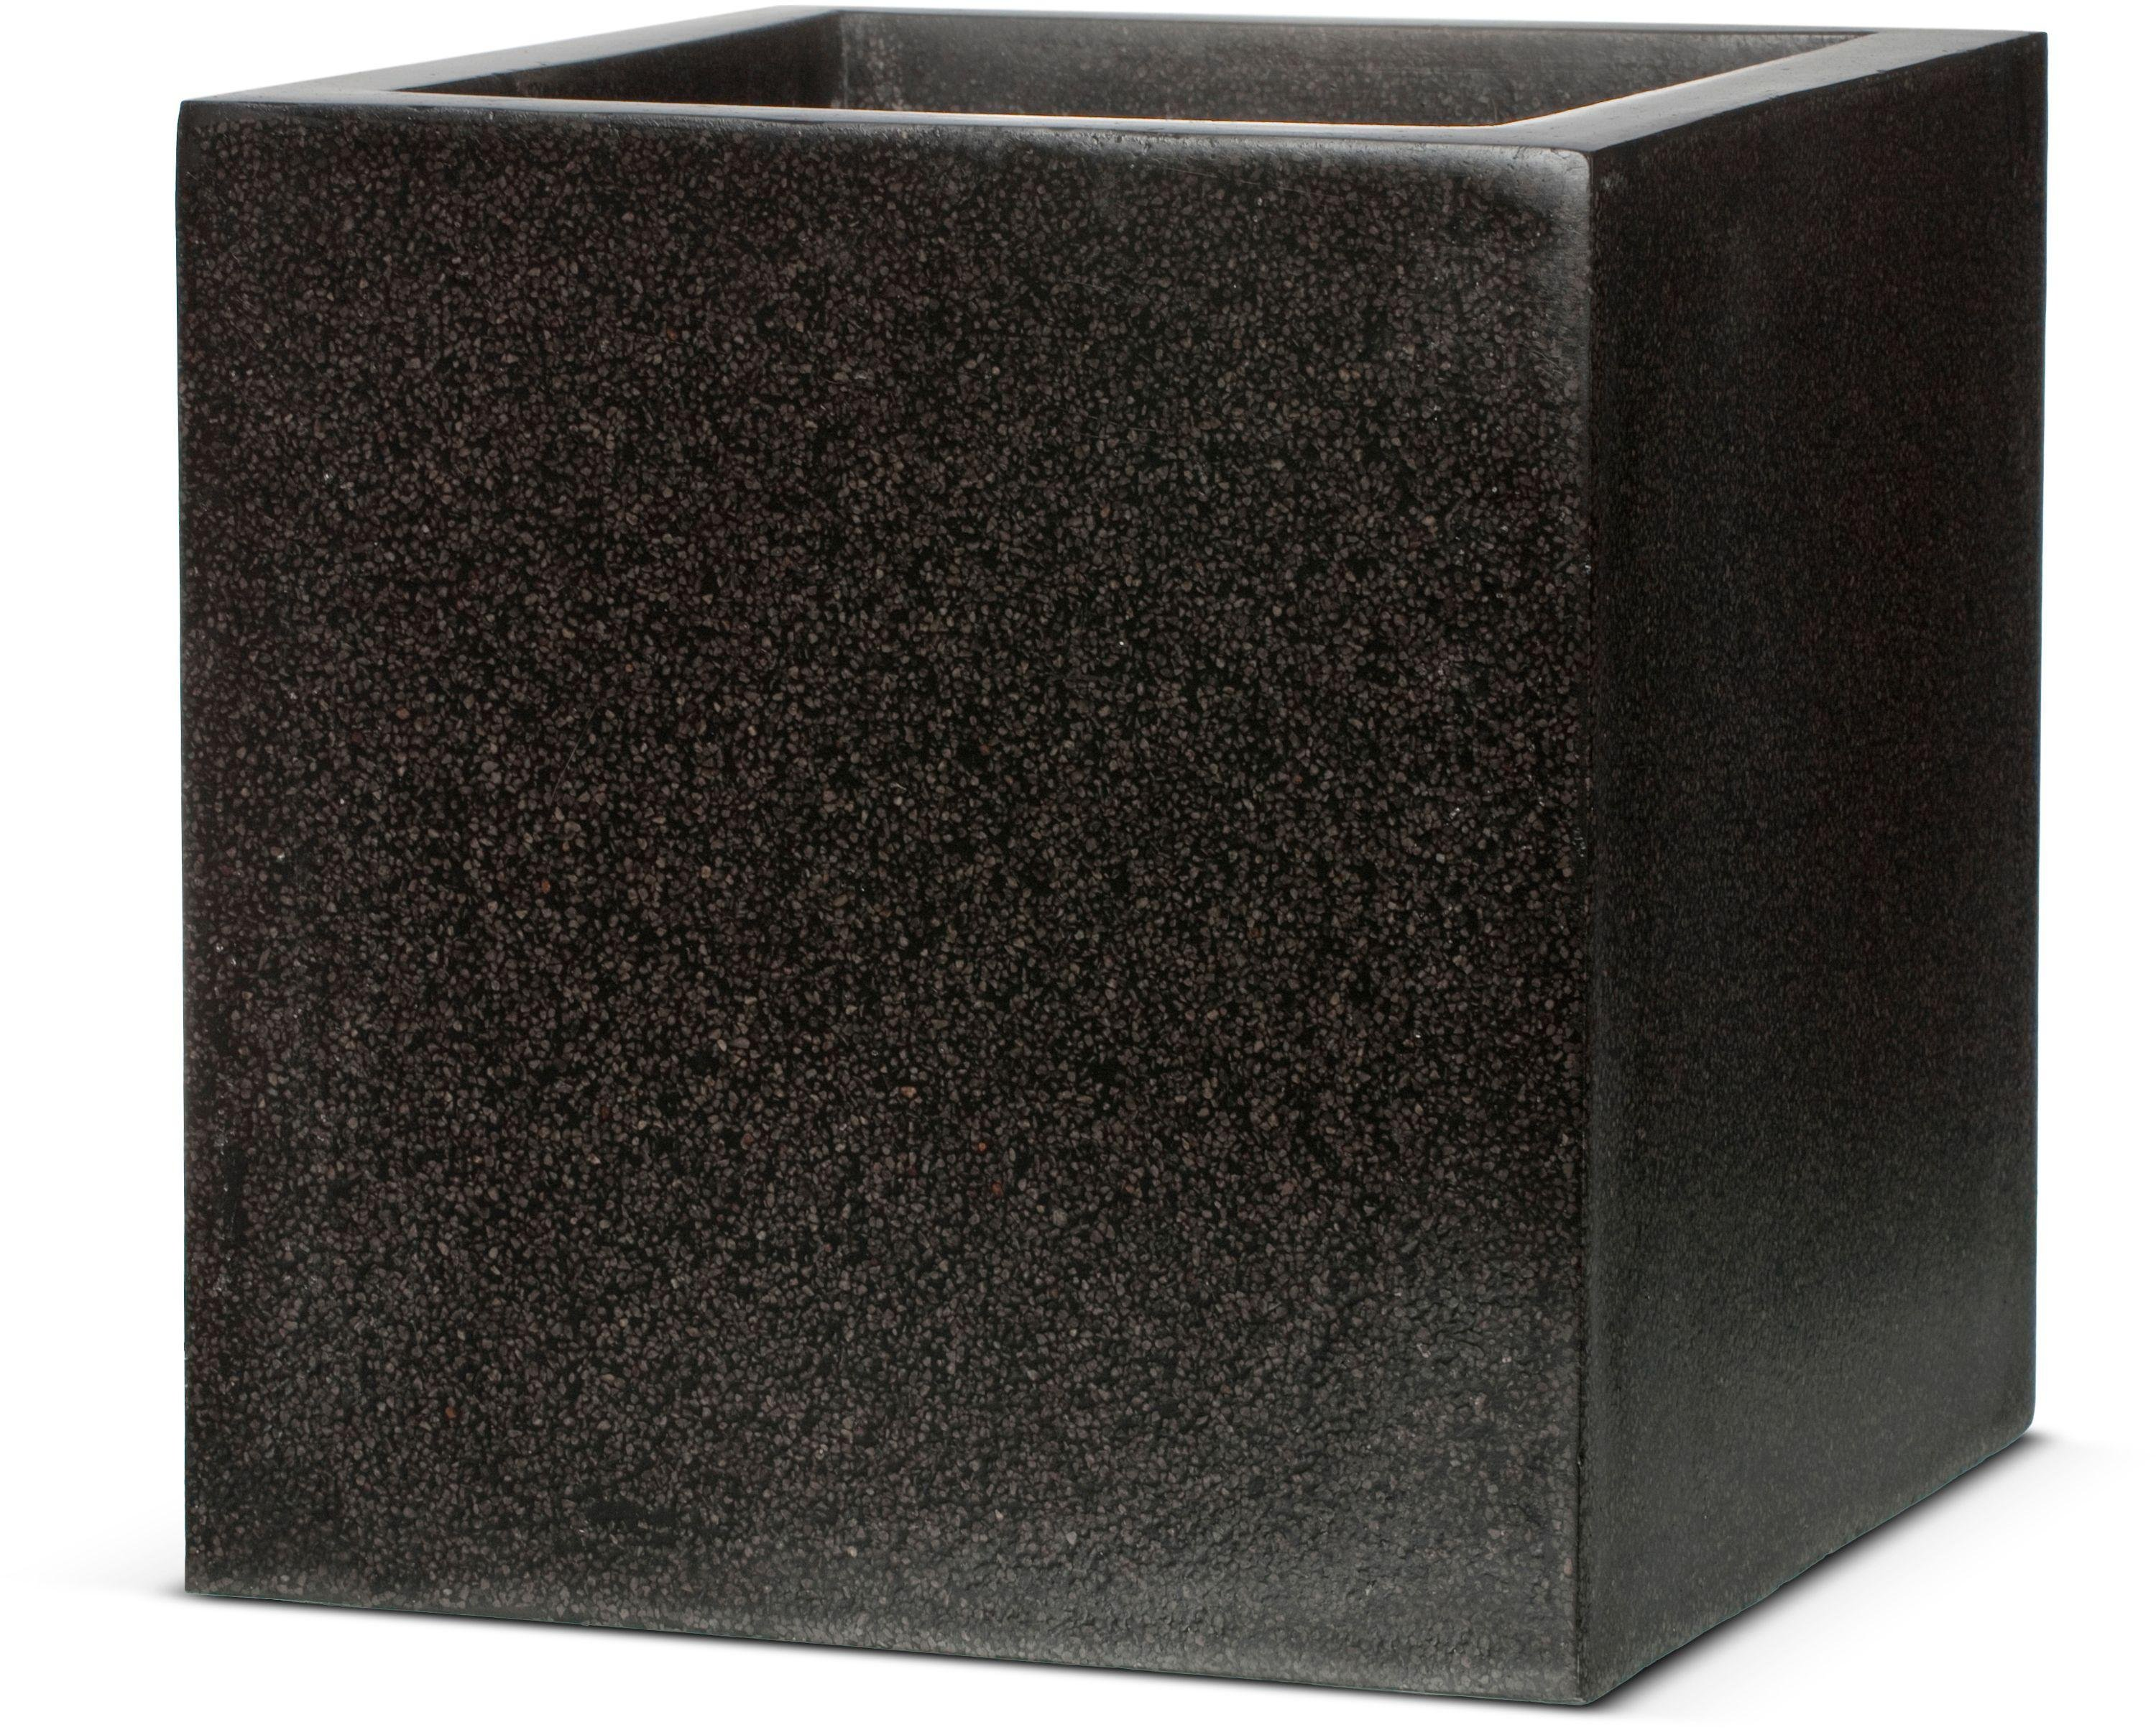 Image of Capi Lux Black Square Planter - 40cm.